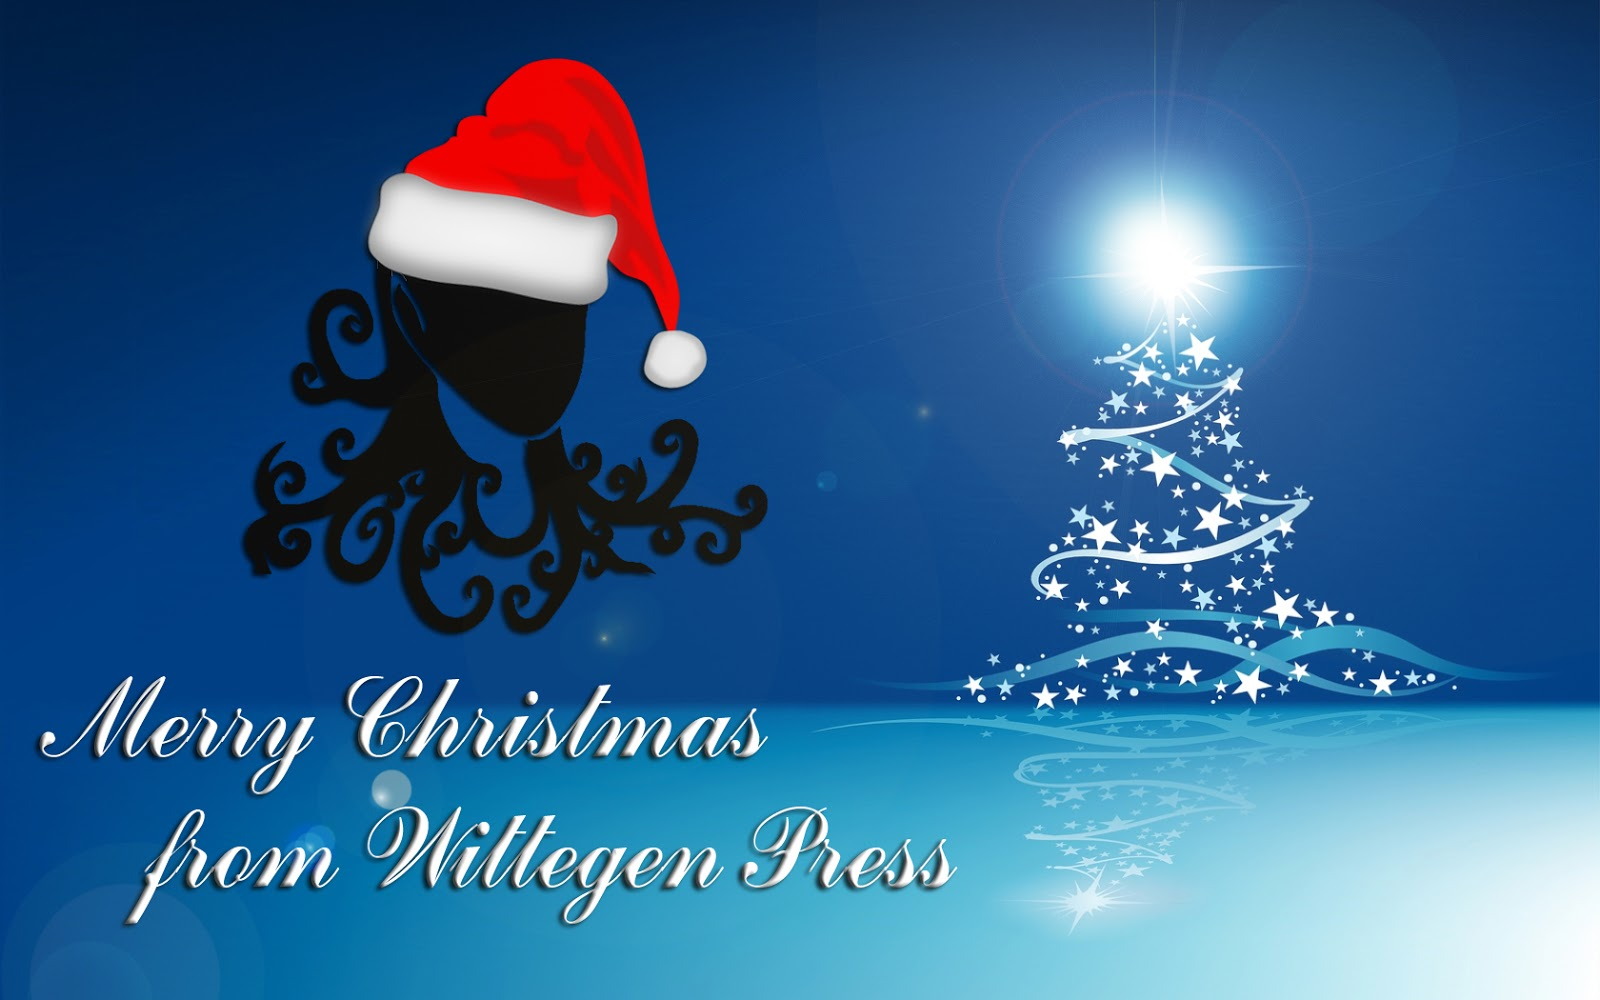 Merry Christmas From Wittegen Press